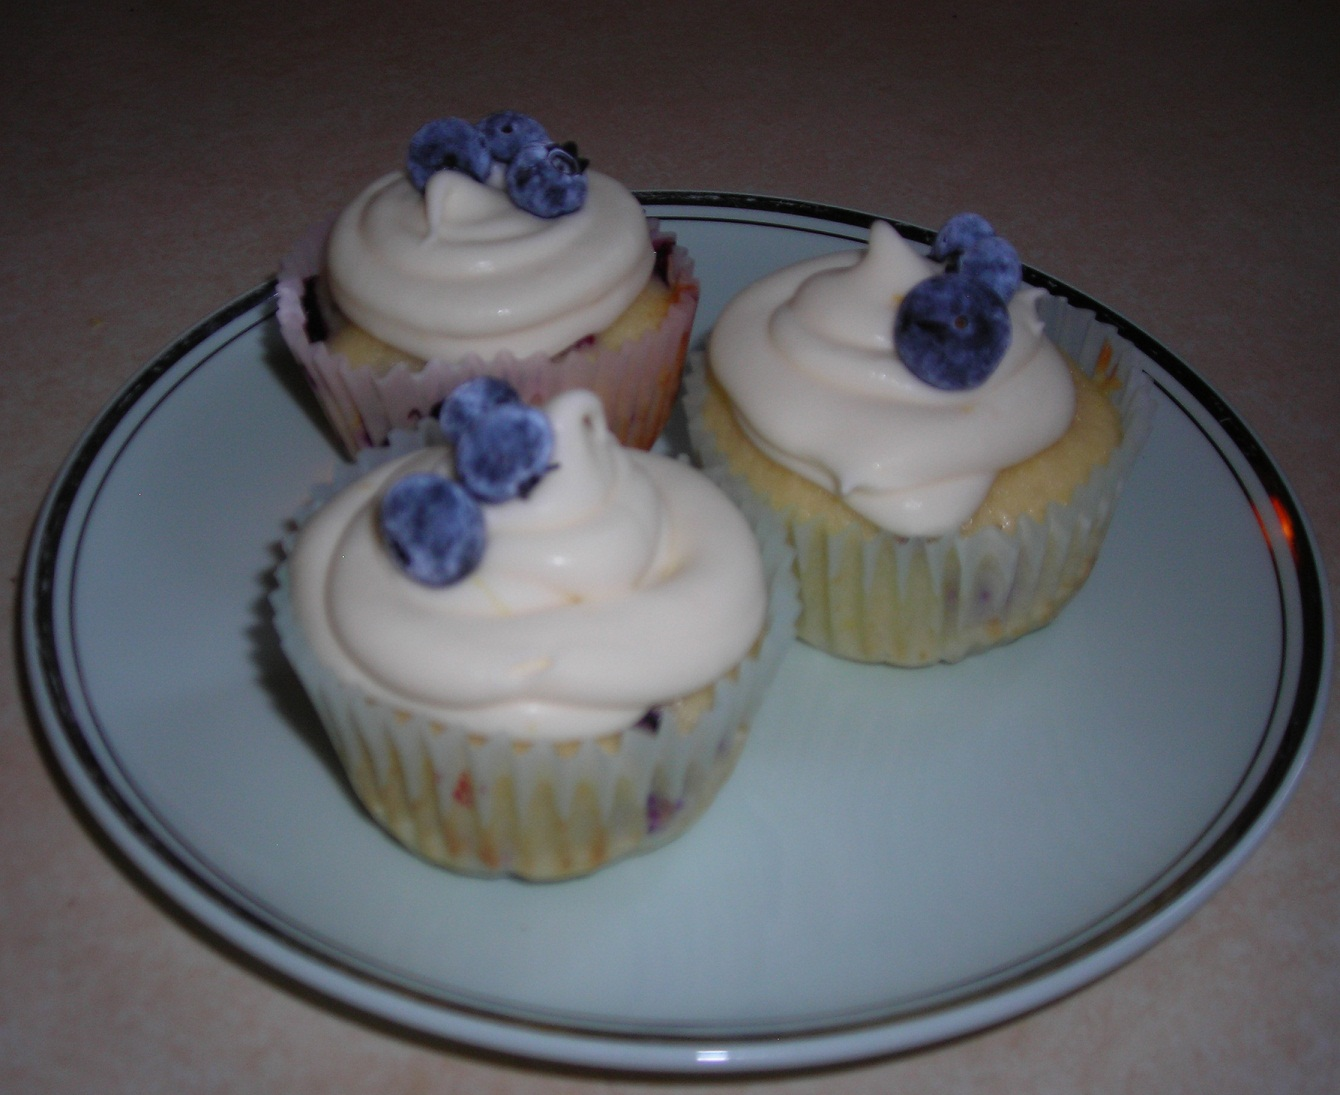 Blueberry Lemon Cupcakes with Lemon Cream Cheese Frosting | Melodyejoy ...